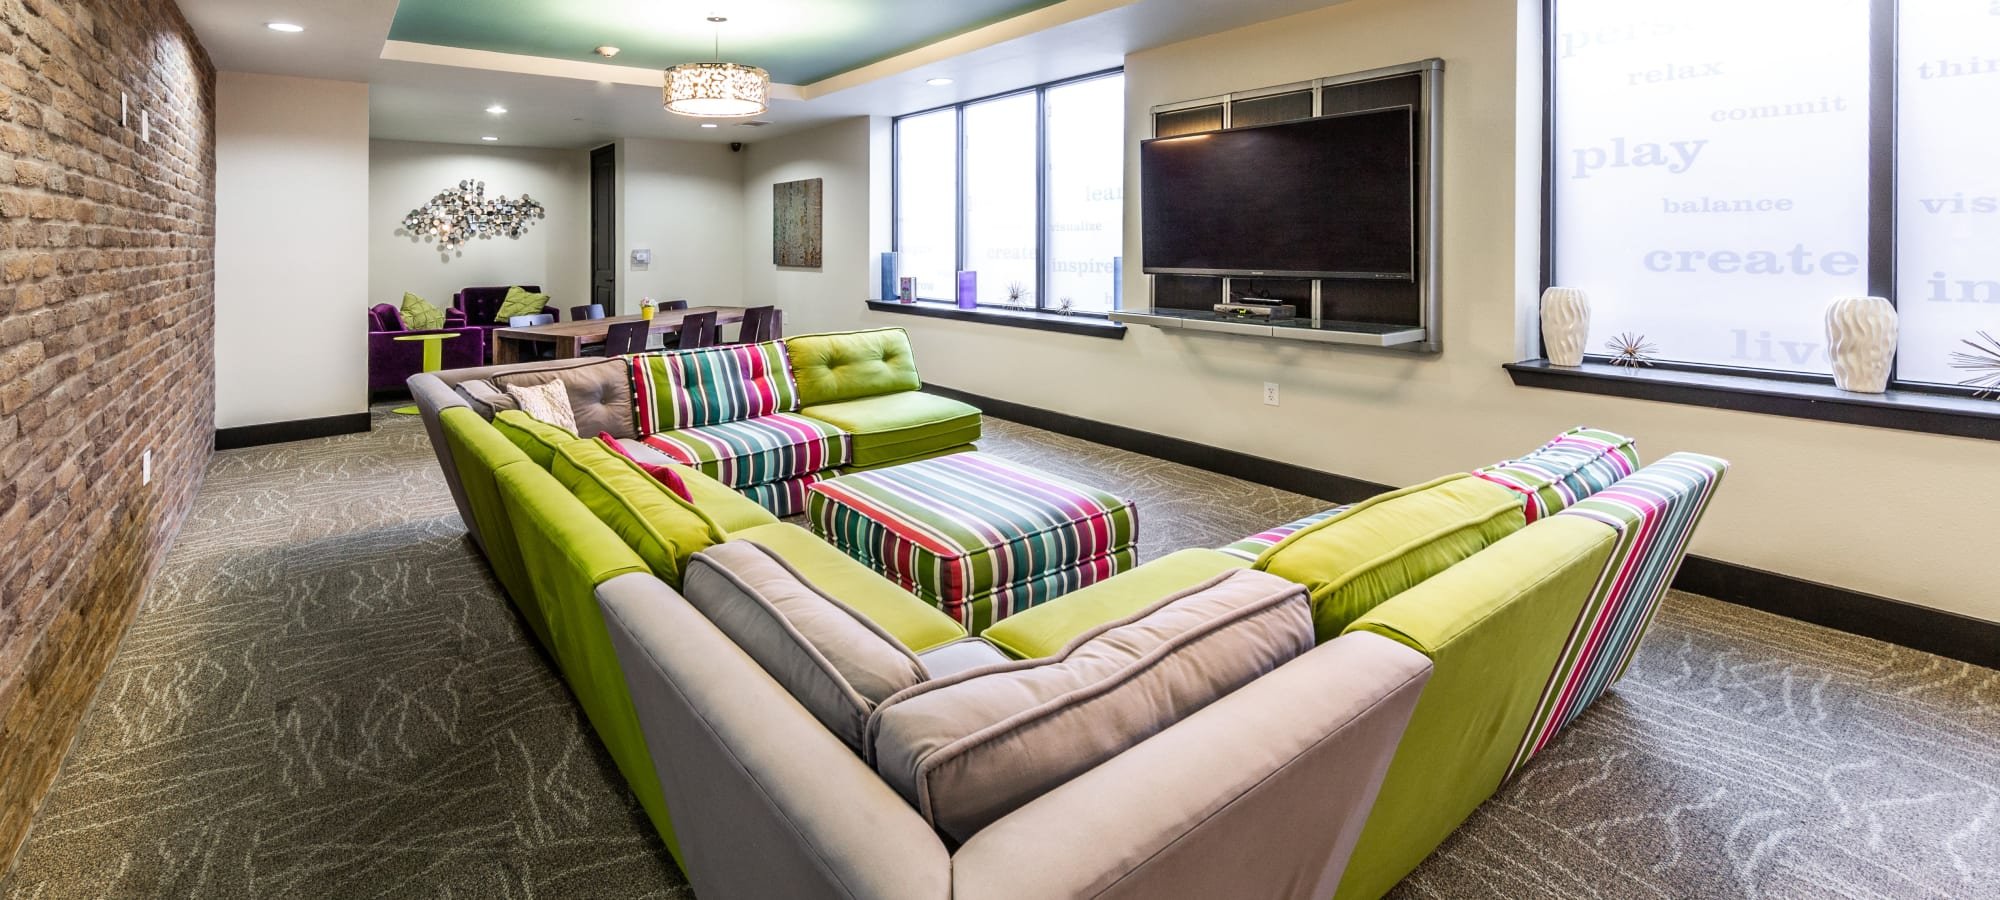 Amenities at Regents West at 24th in Austin, Texas